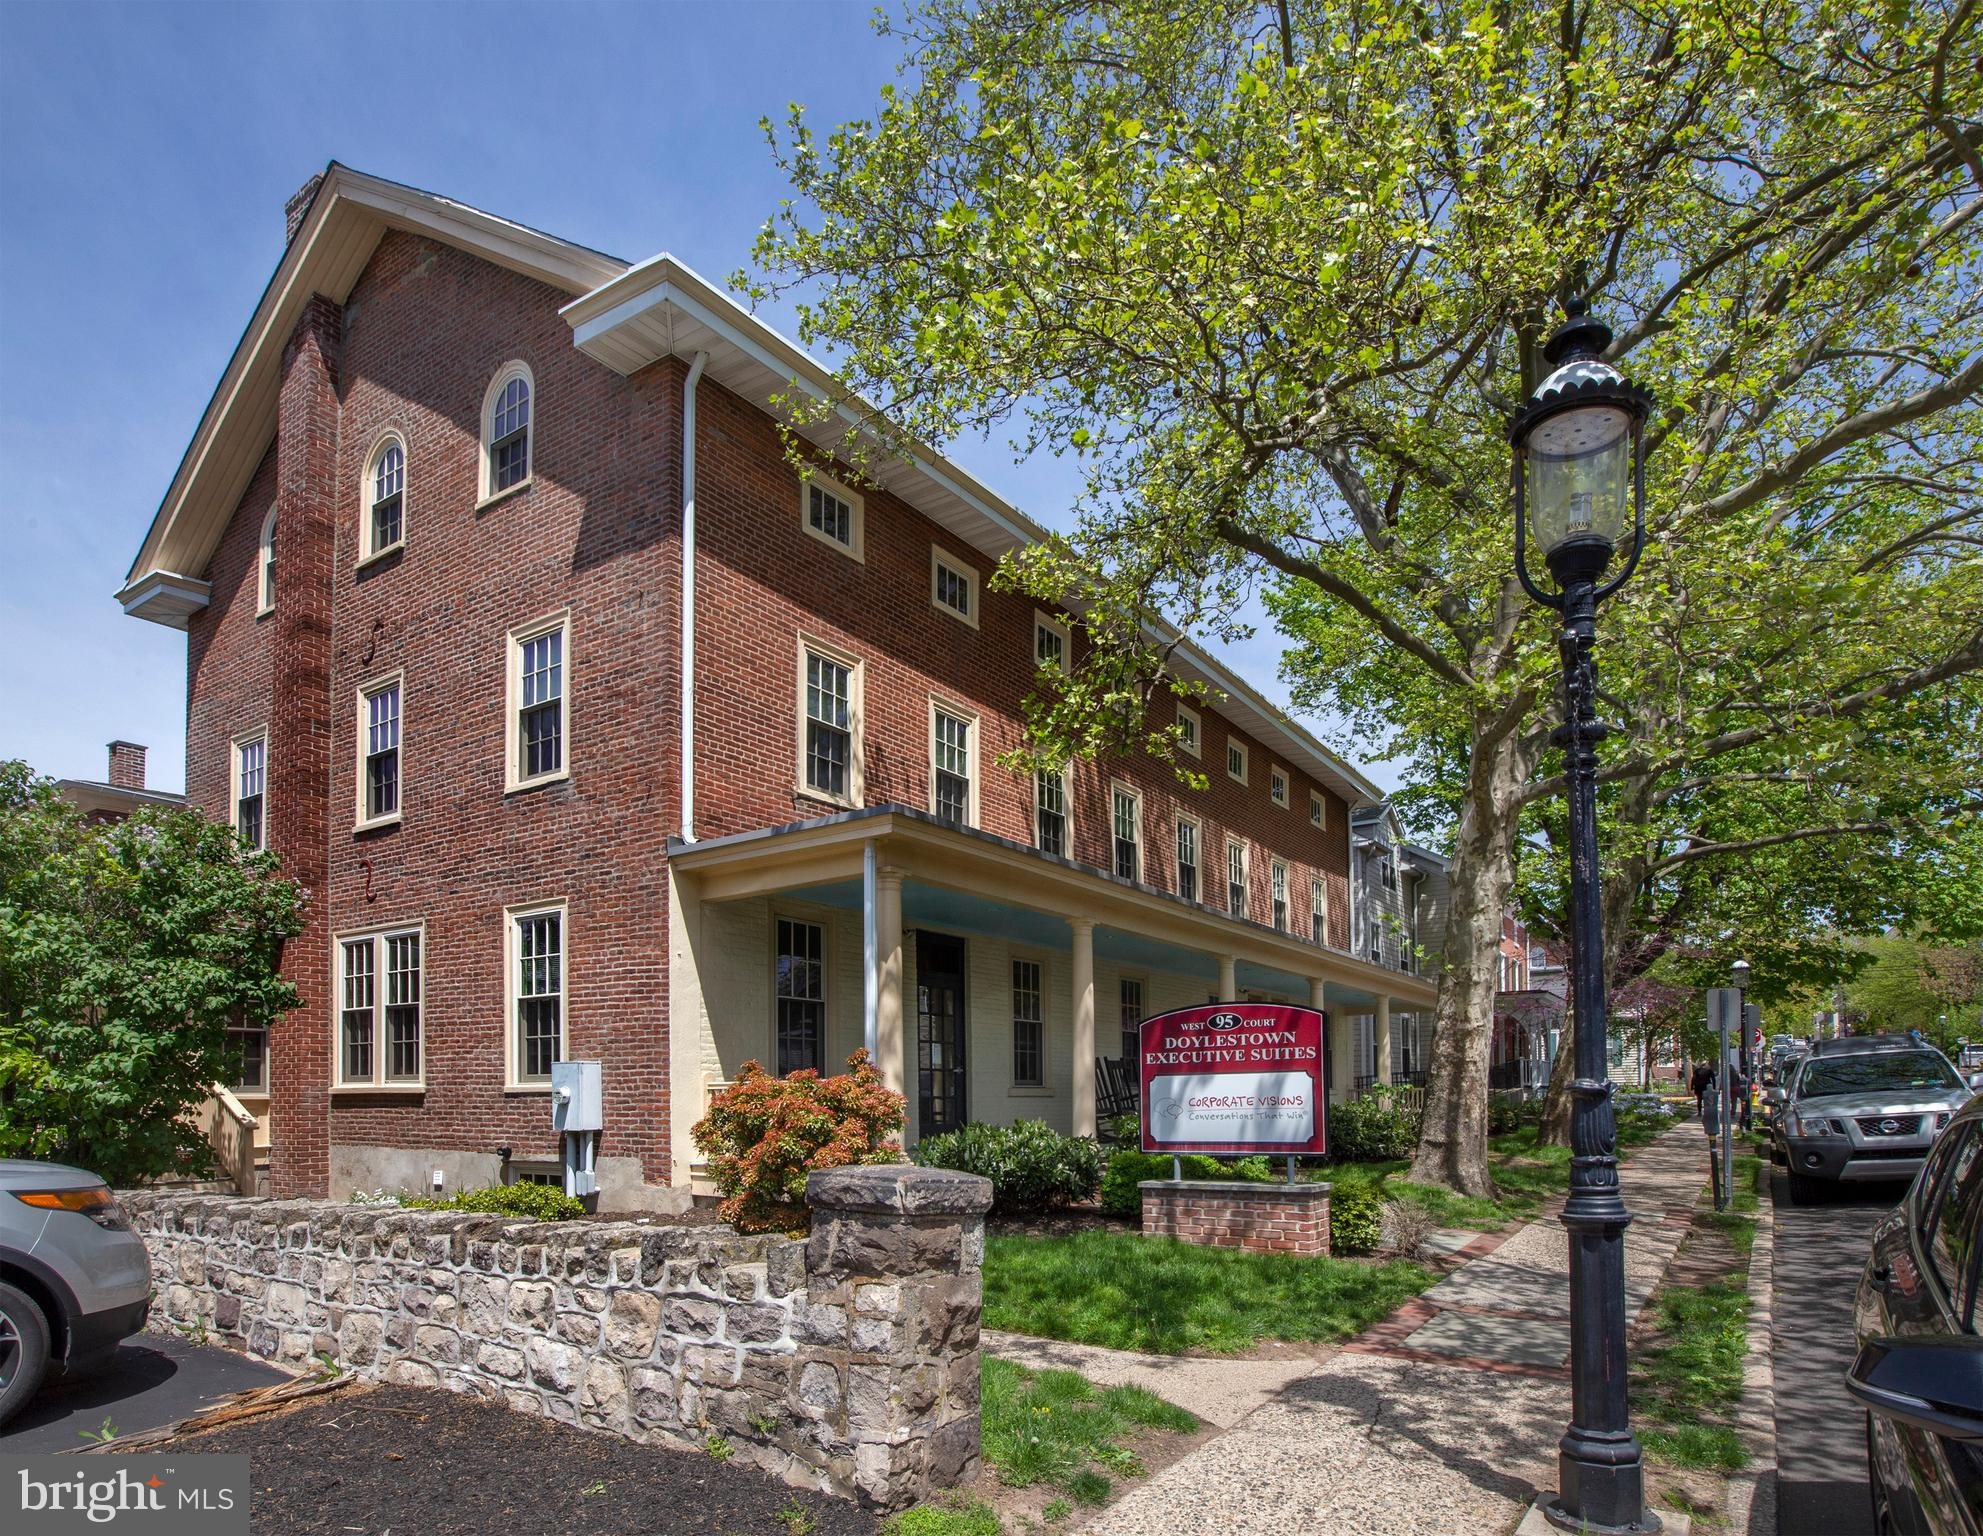 95 W COURT STREET, DOYLESTOWN, PA 18901